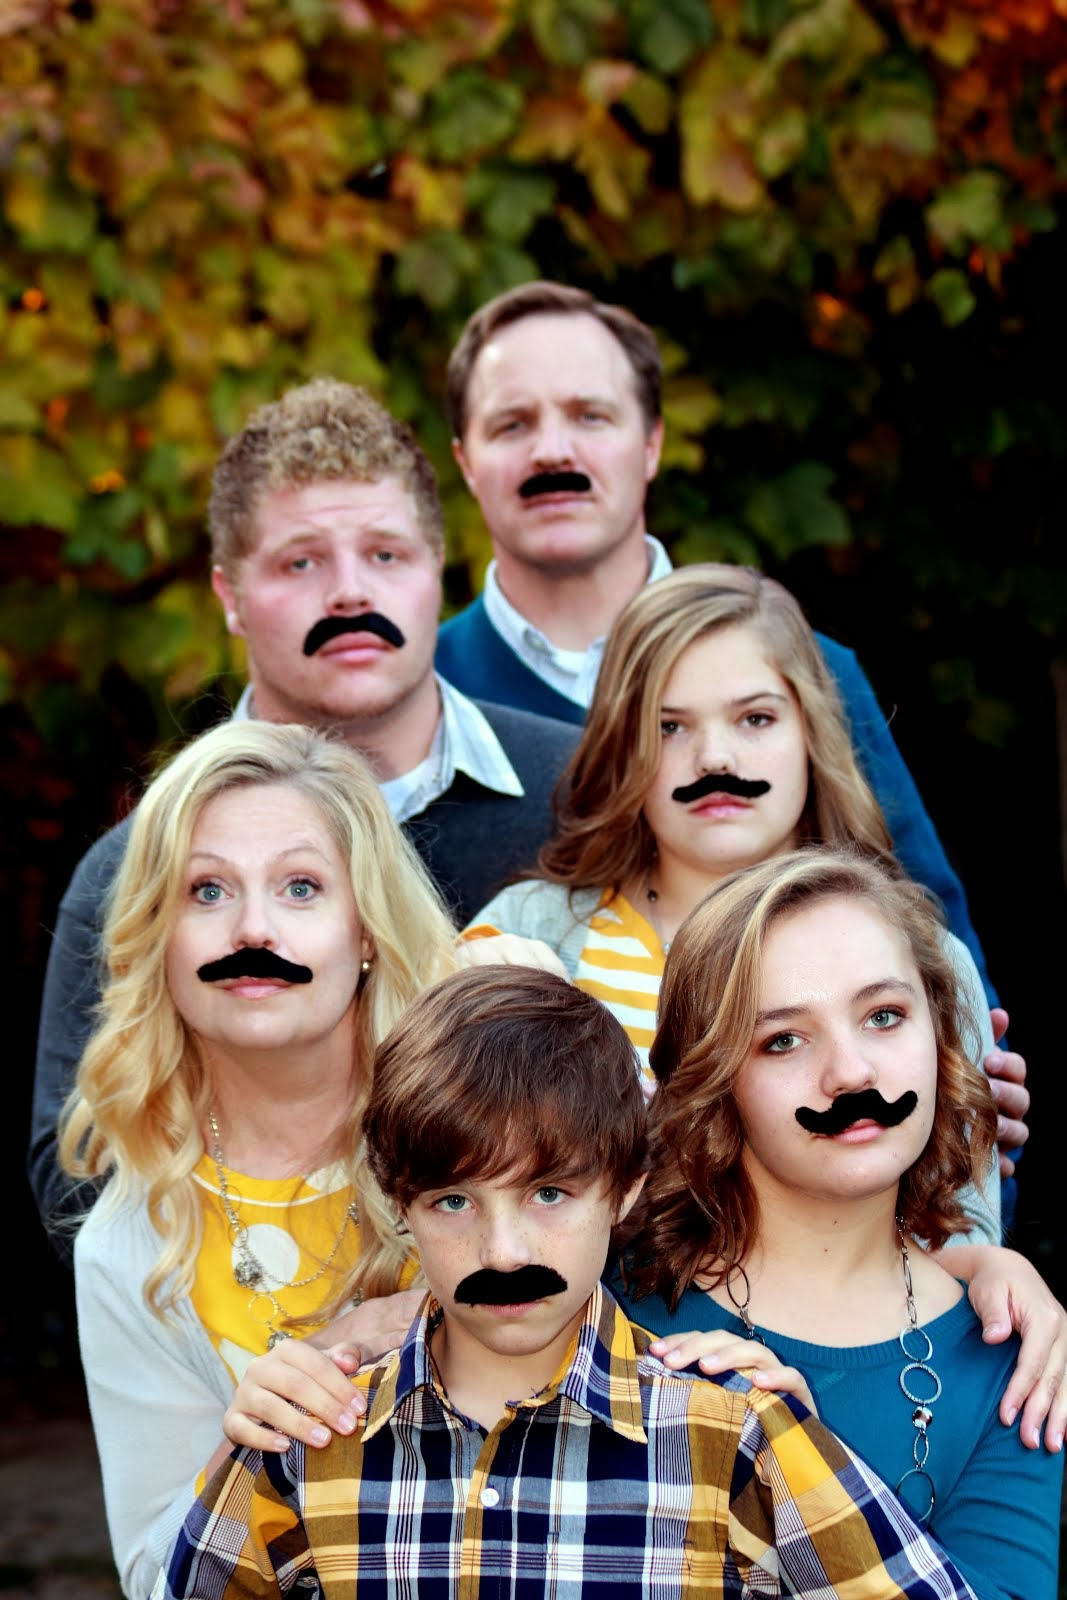 I mustache you a question- dId you know your family can be together after death?